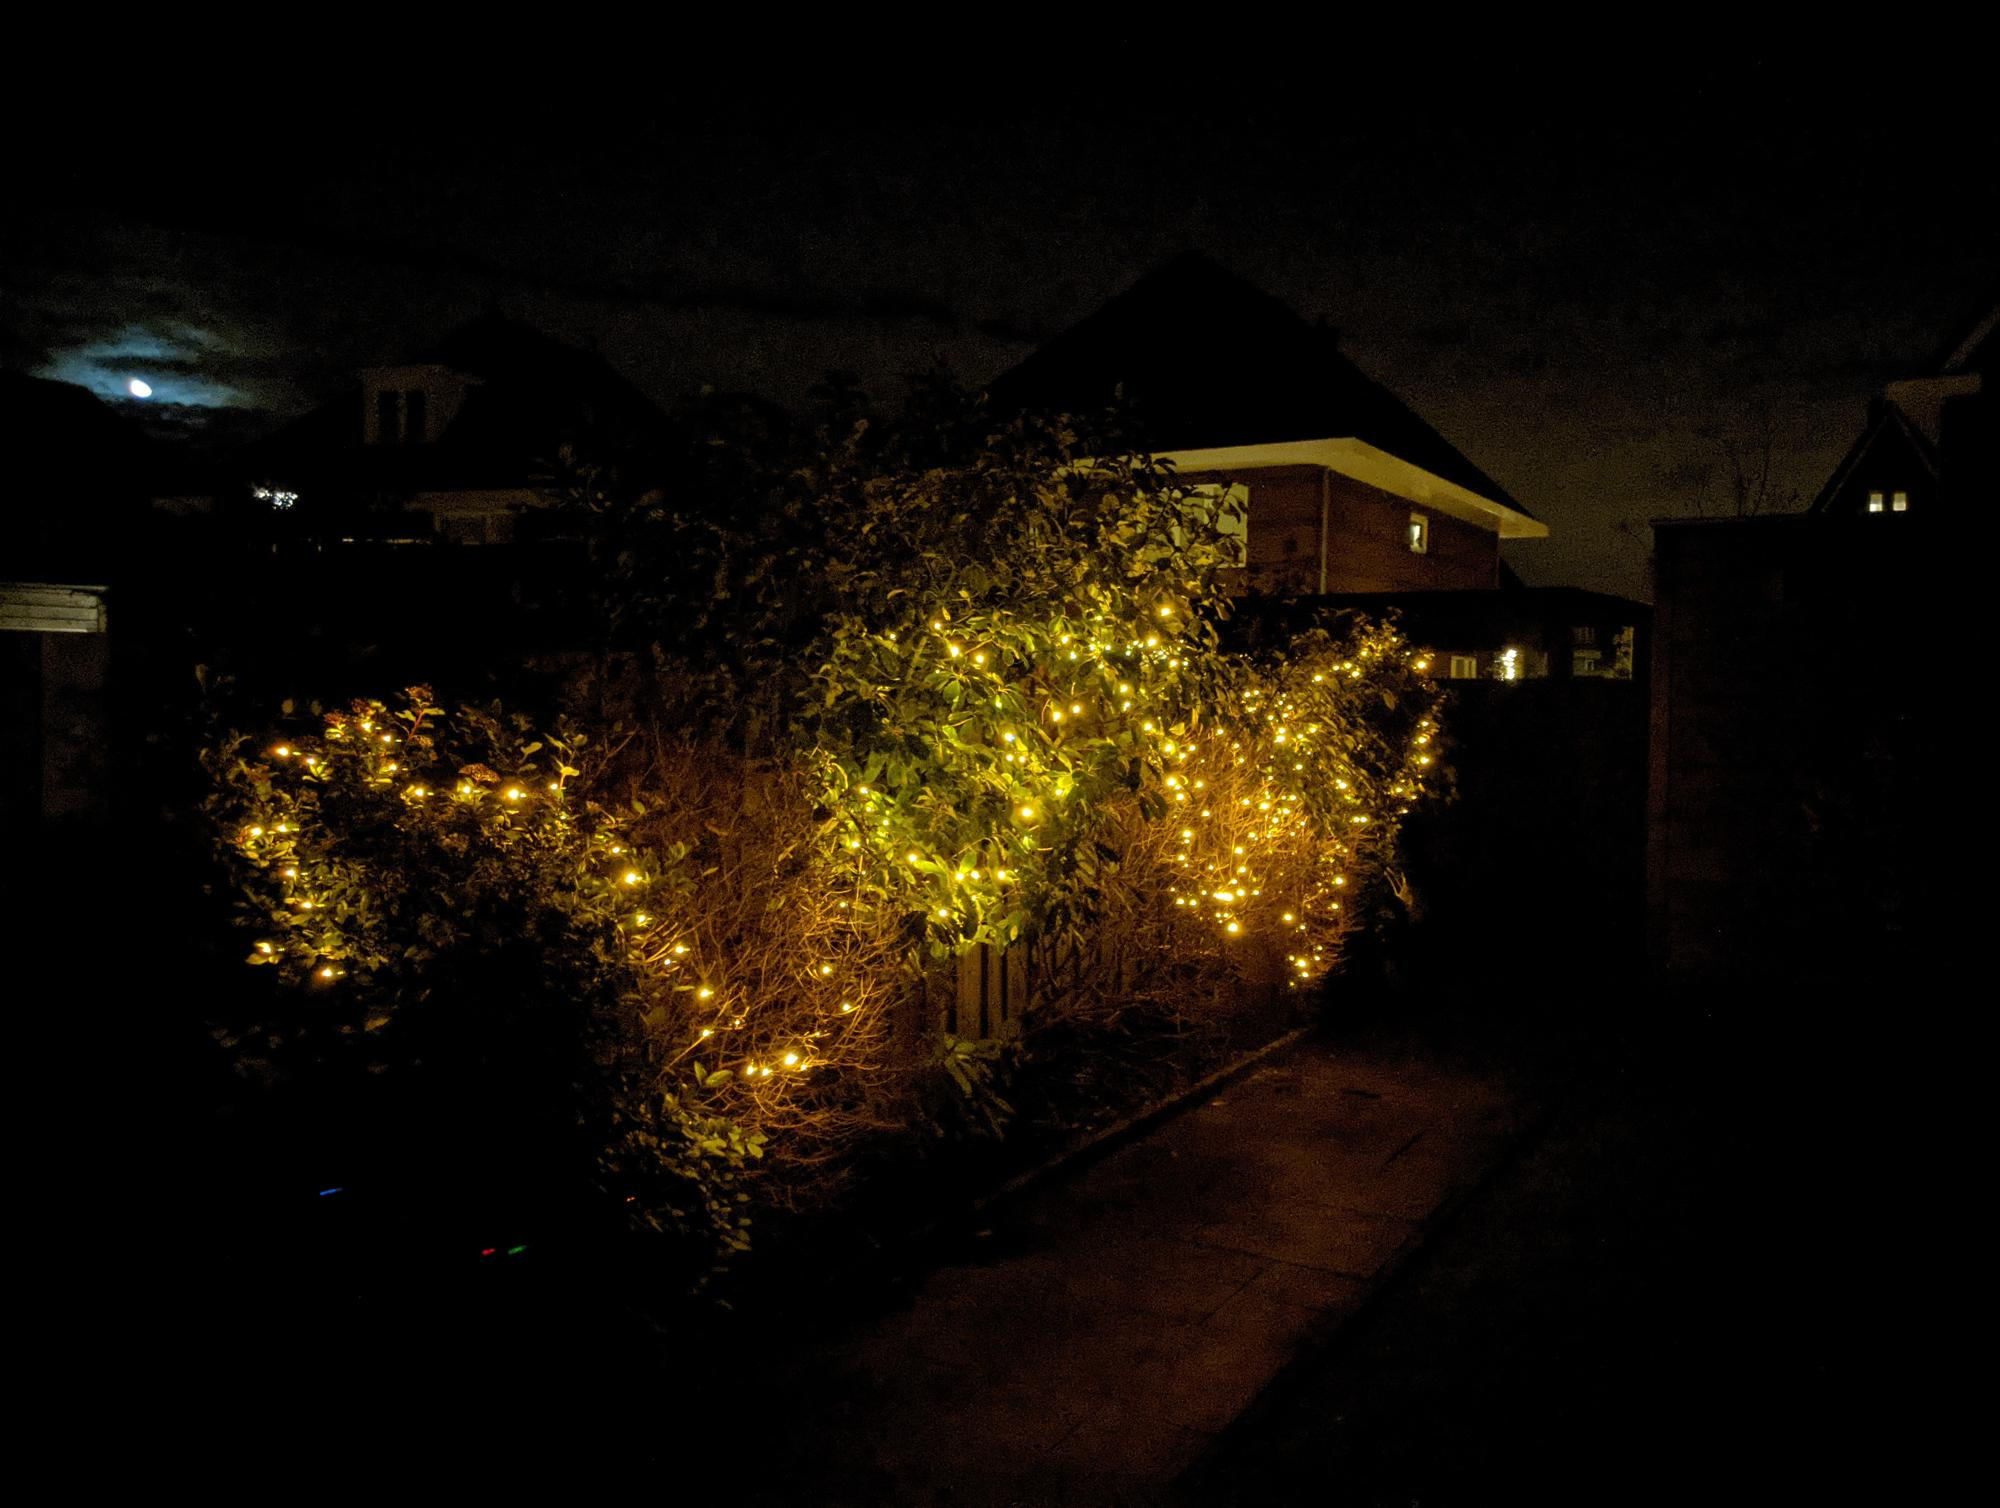 Garden lit up by small LED lights in the plants